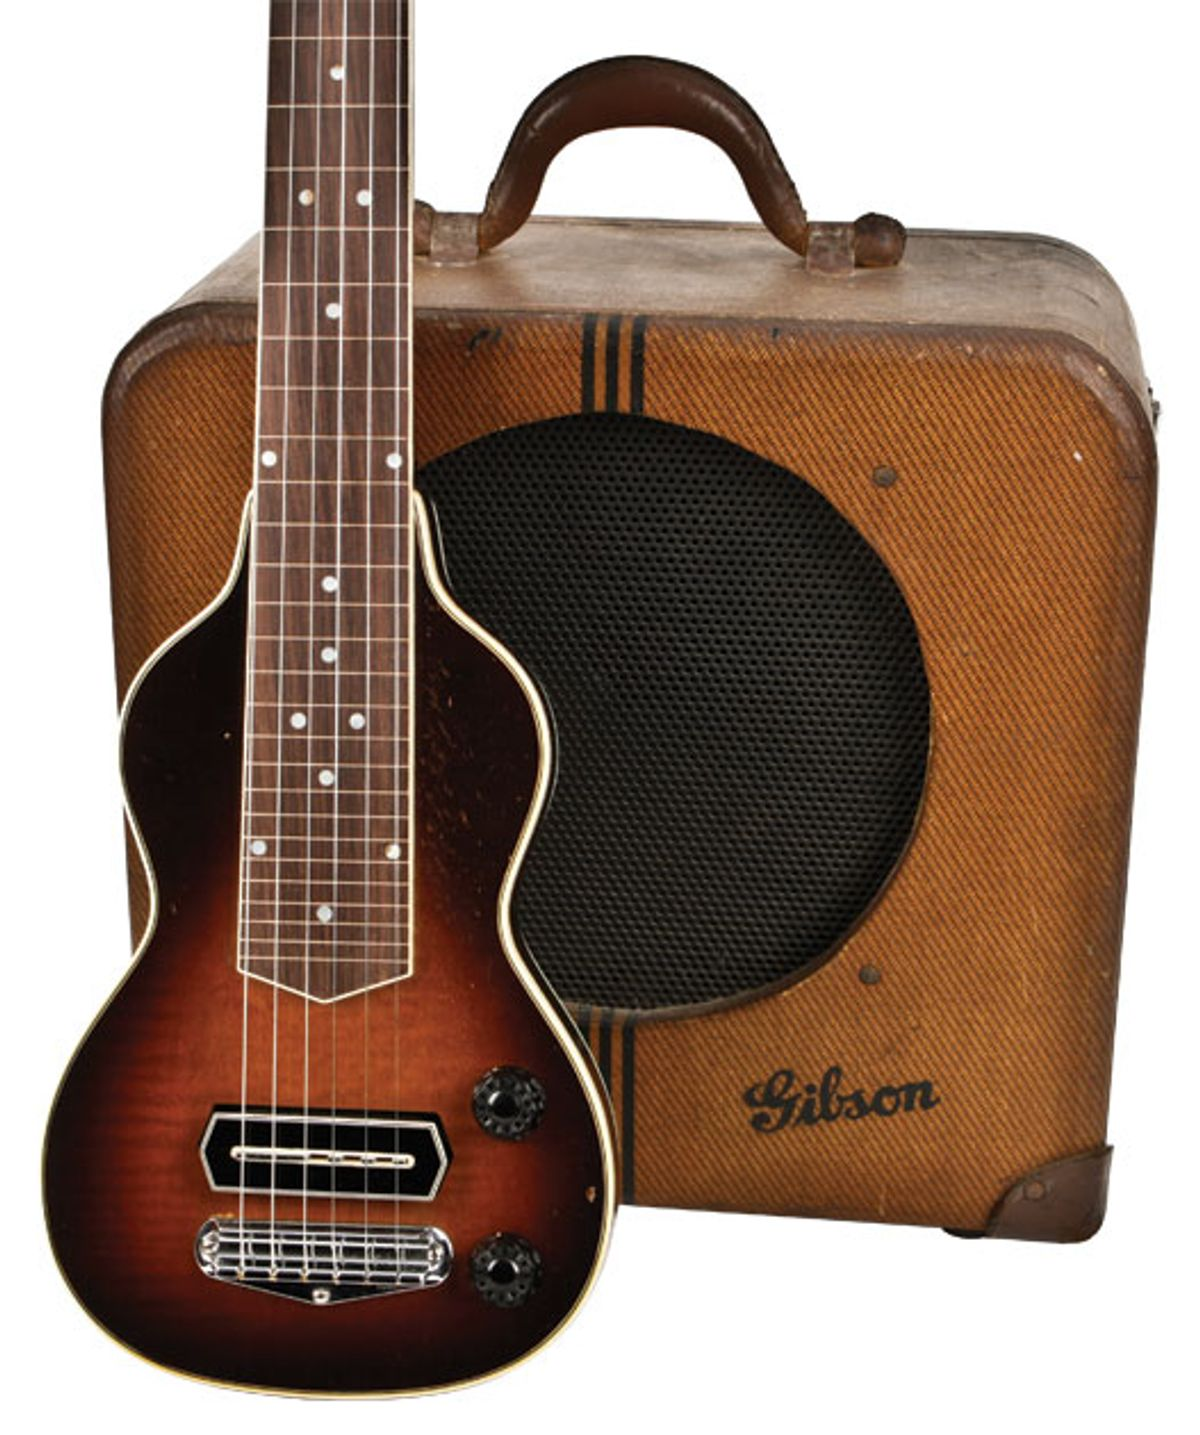 Vintage Vault: 1937 Gibson EH-150 Guitar and Amp